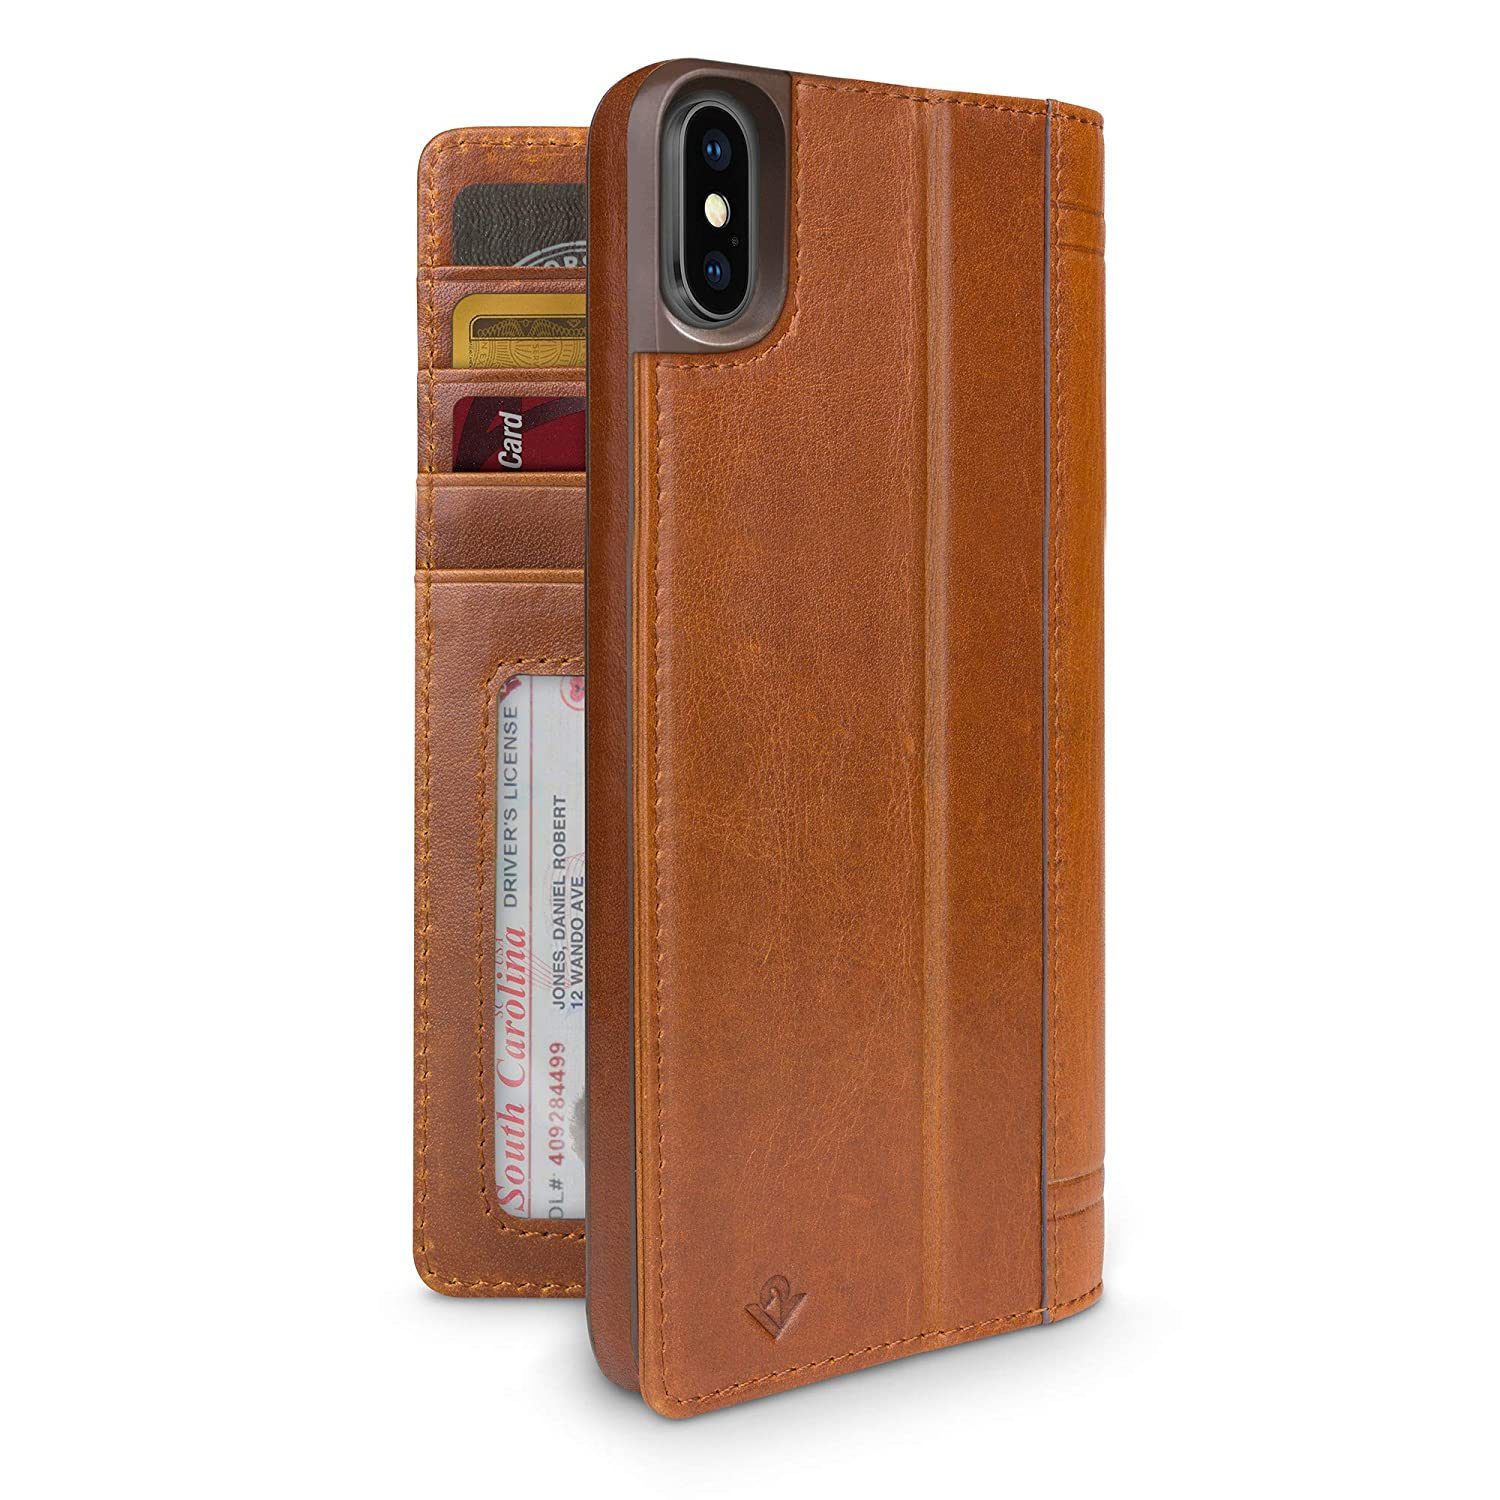 twelve south iphone xs max  : Twelve South Journal for iPhone Xs Max | Luxury Leather ...